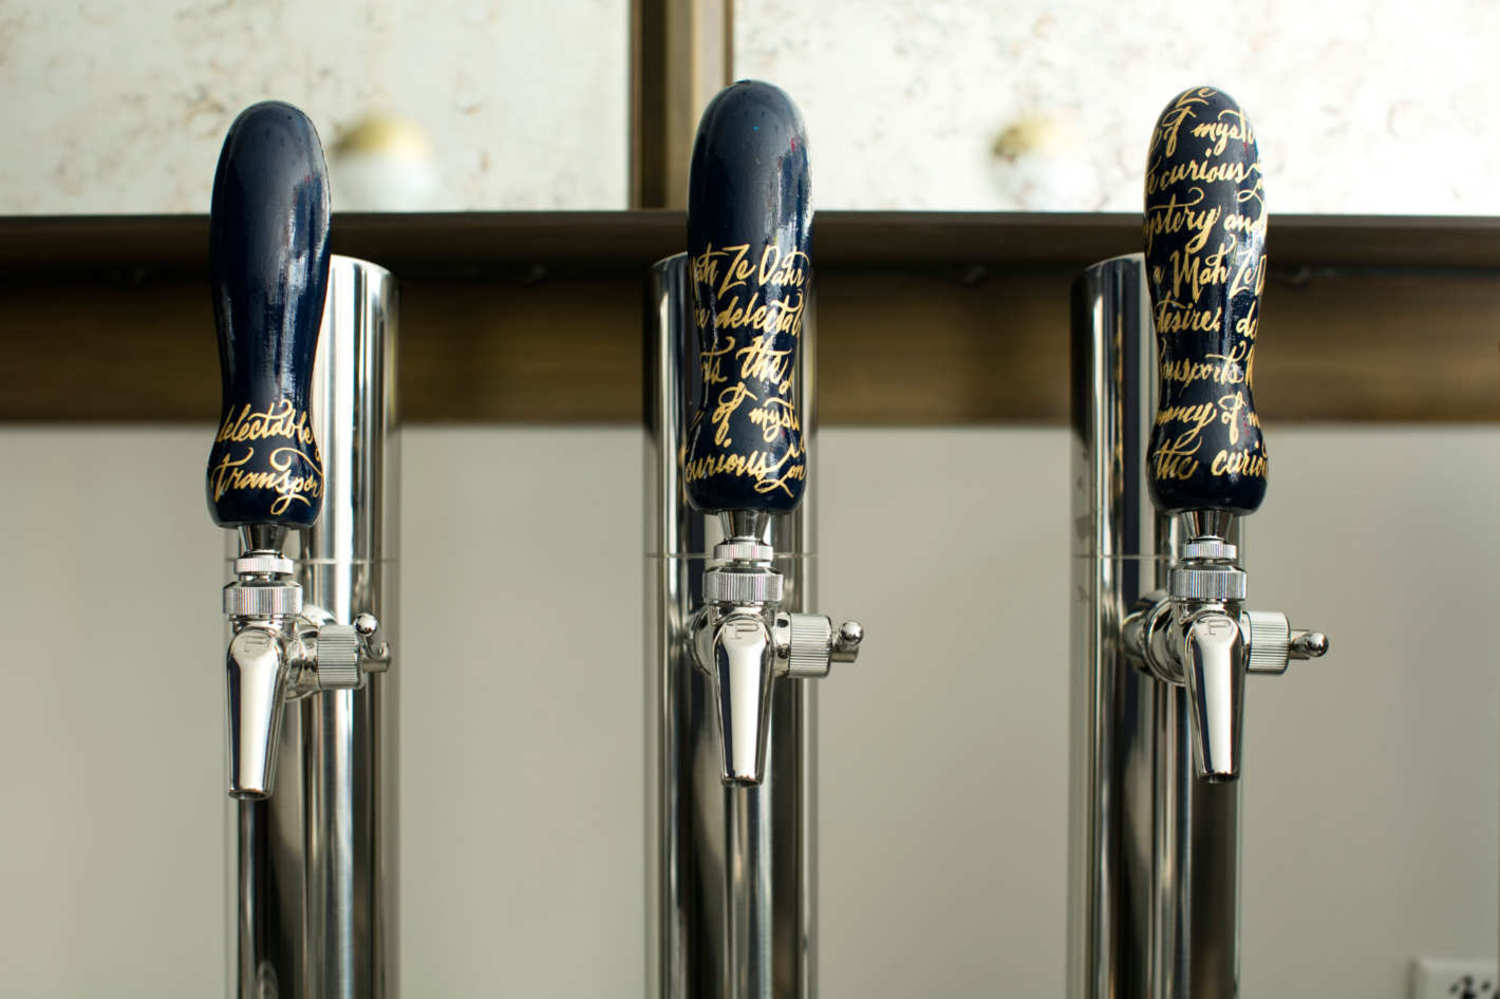 On tap: cold-brewed Intelligentsia coffee, iced tea, and sparkling water.